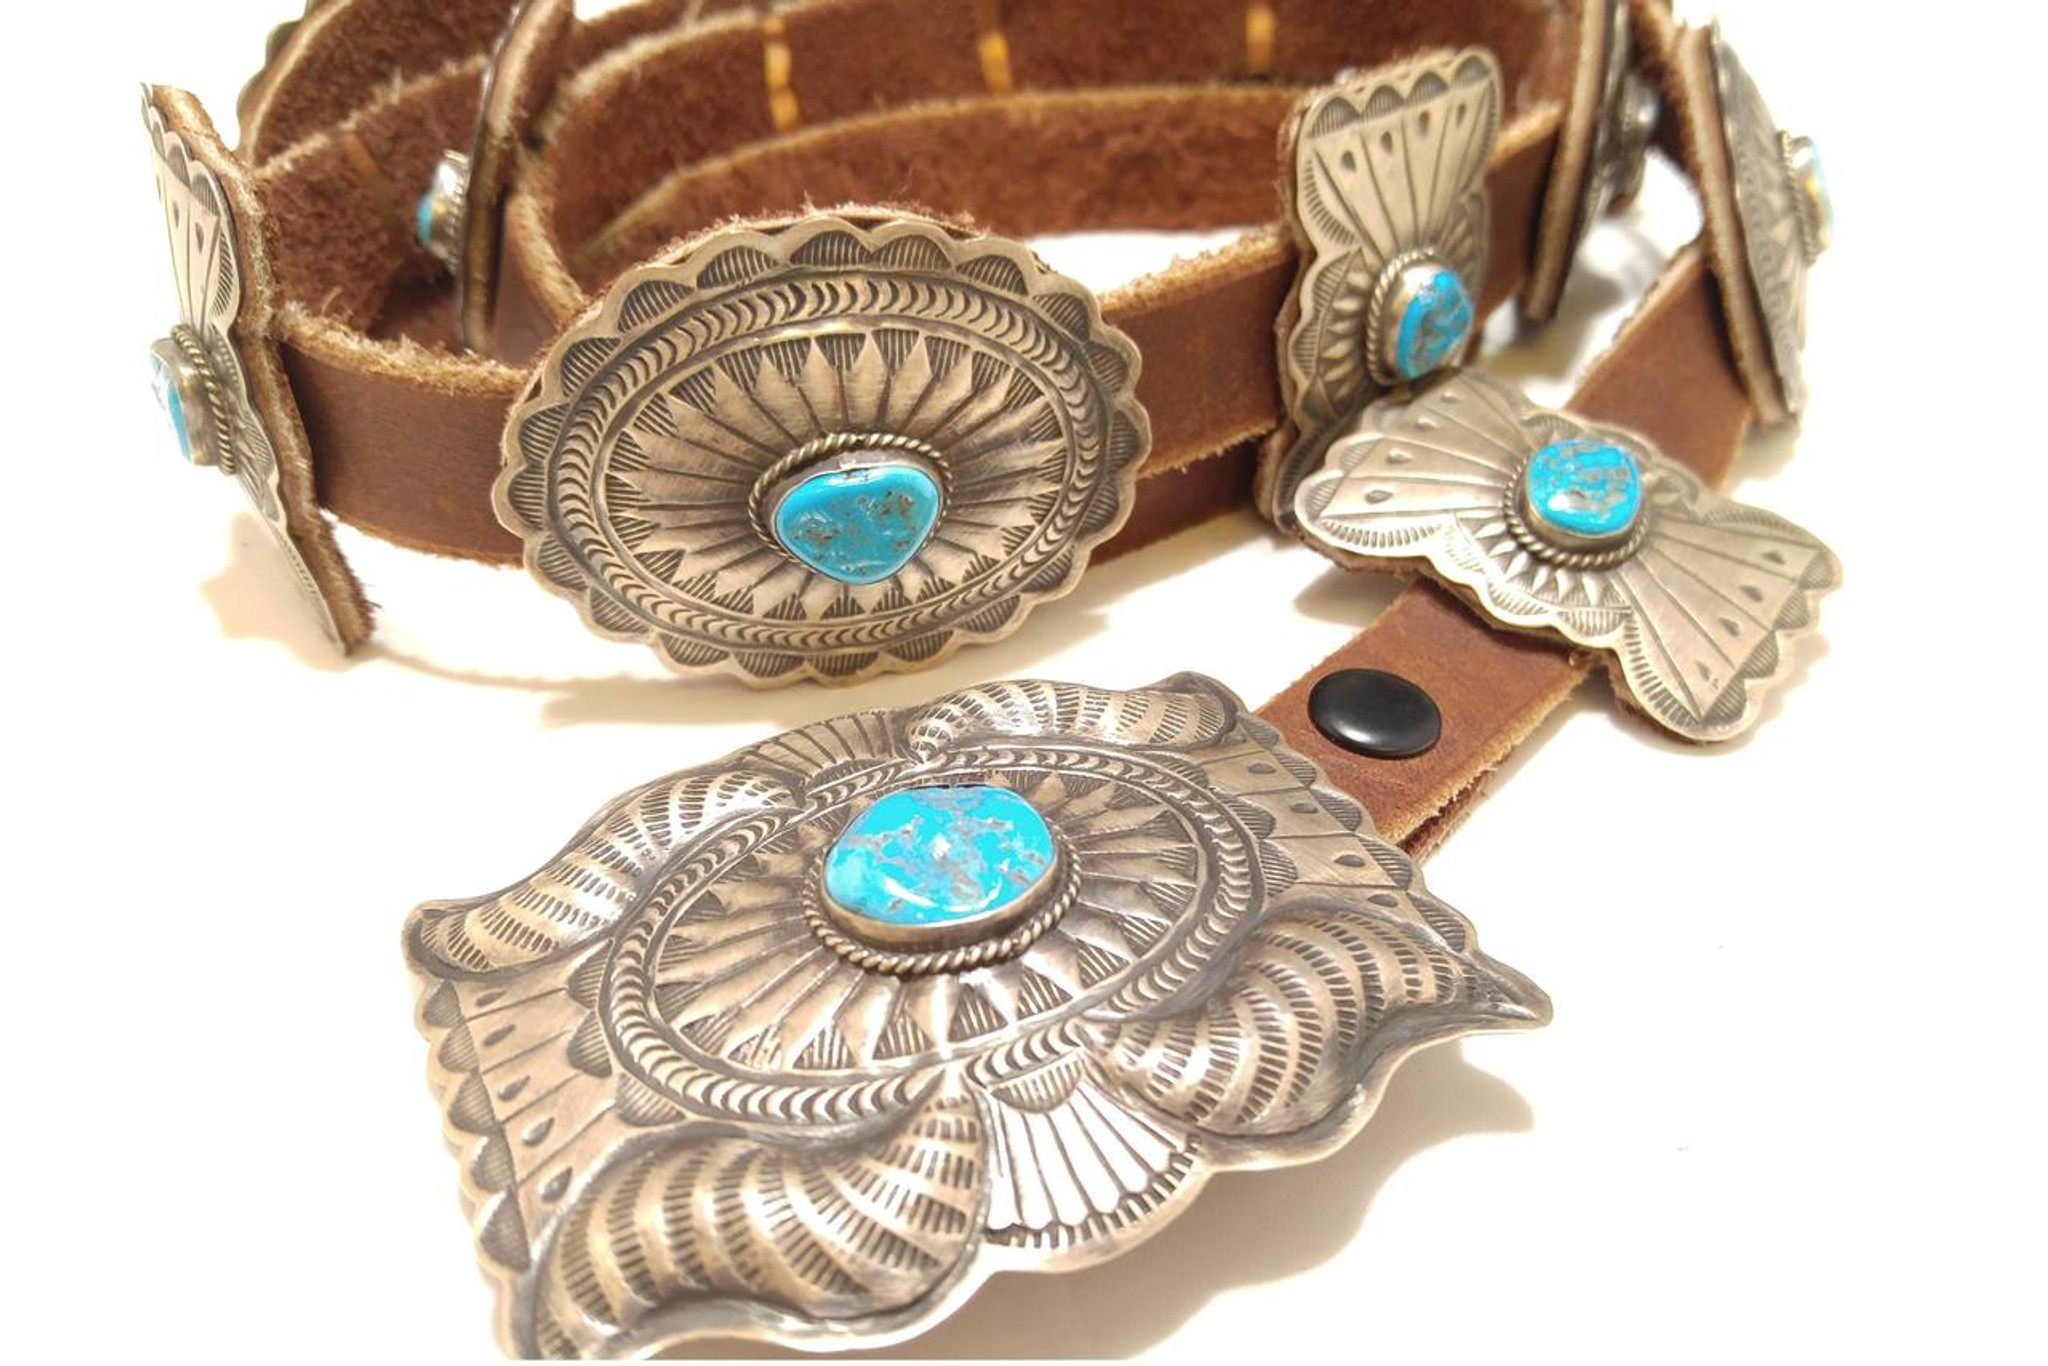 Chaco Canyon Sleeping Beauty Turquoise Concho Belt